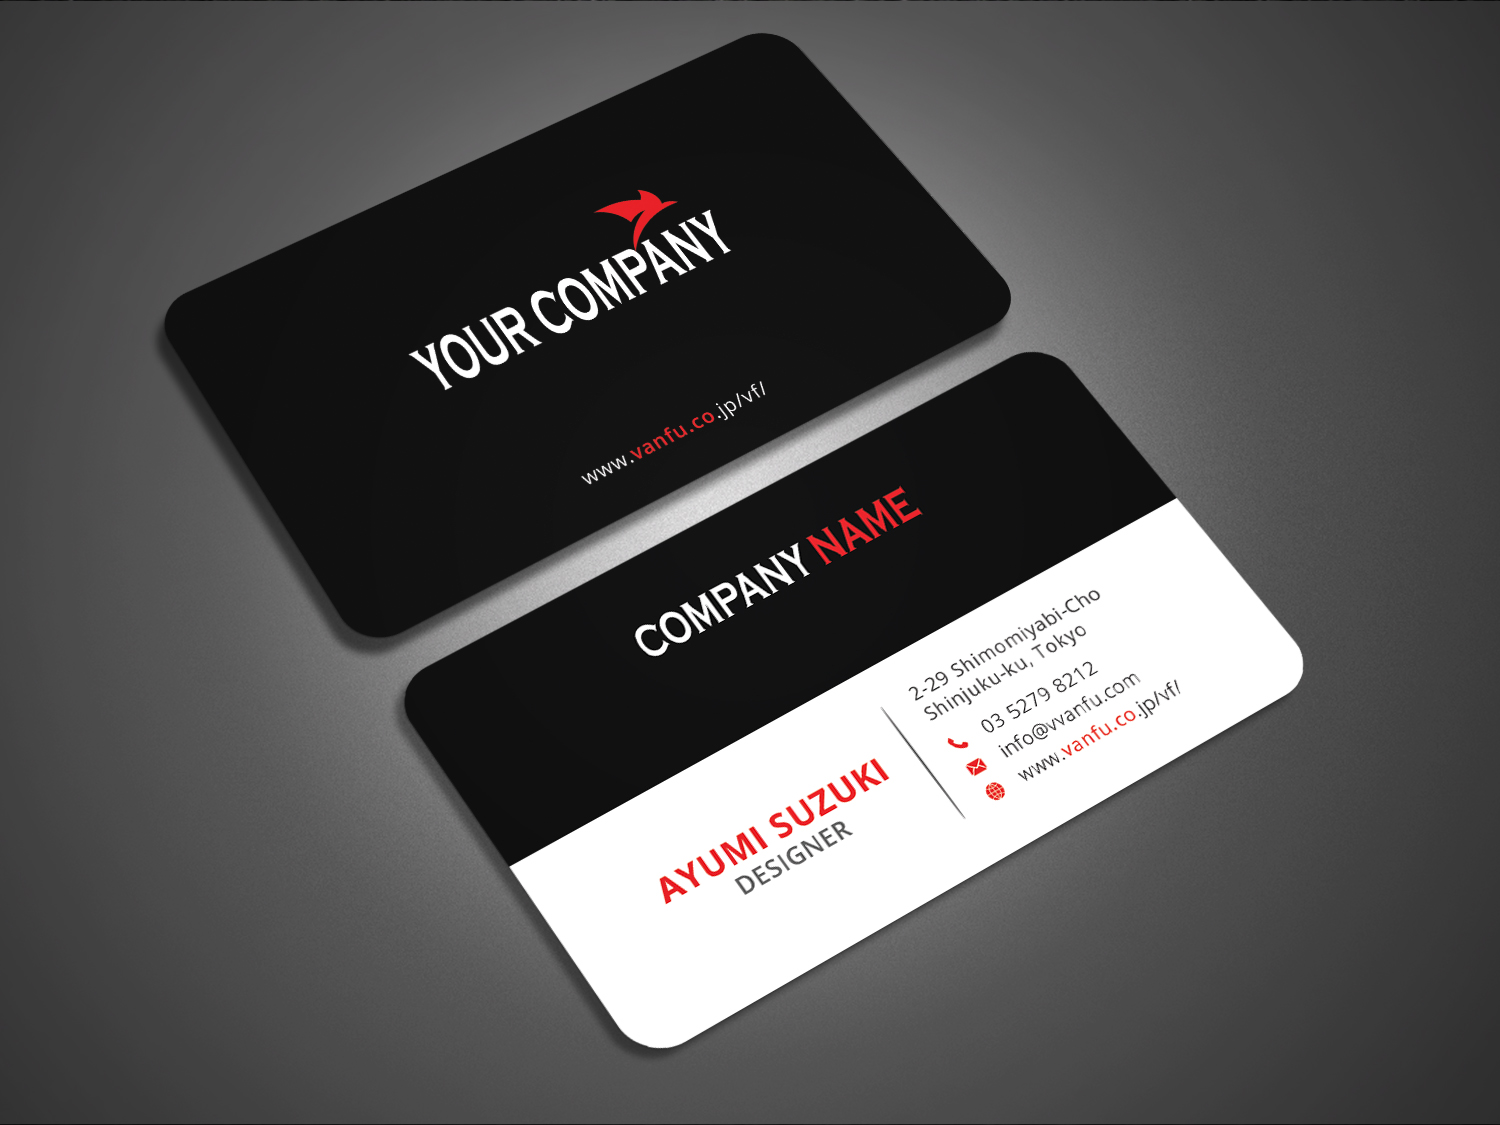 Elegant playful printing business card design for vanfu inc by business card design by graphic flame for vanfu inc design 13876556 reheart Image collections